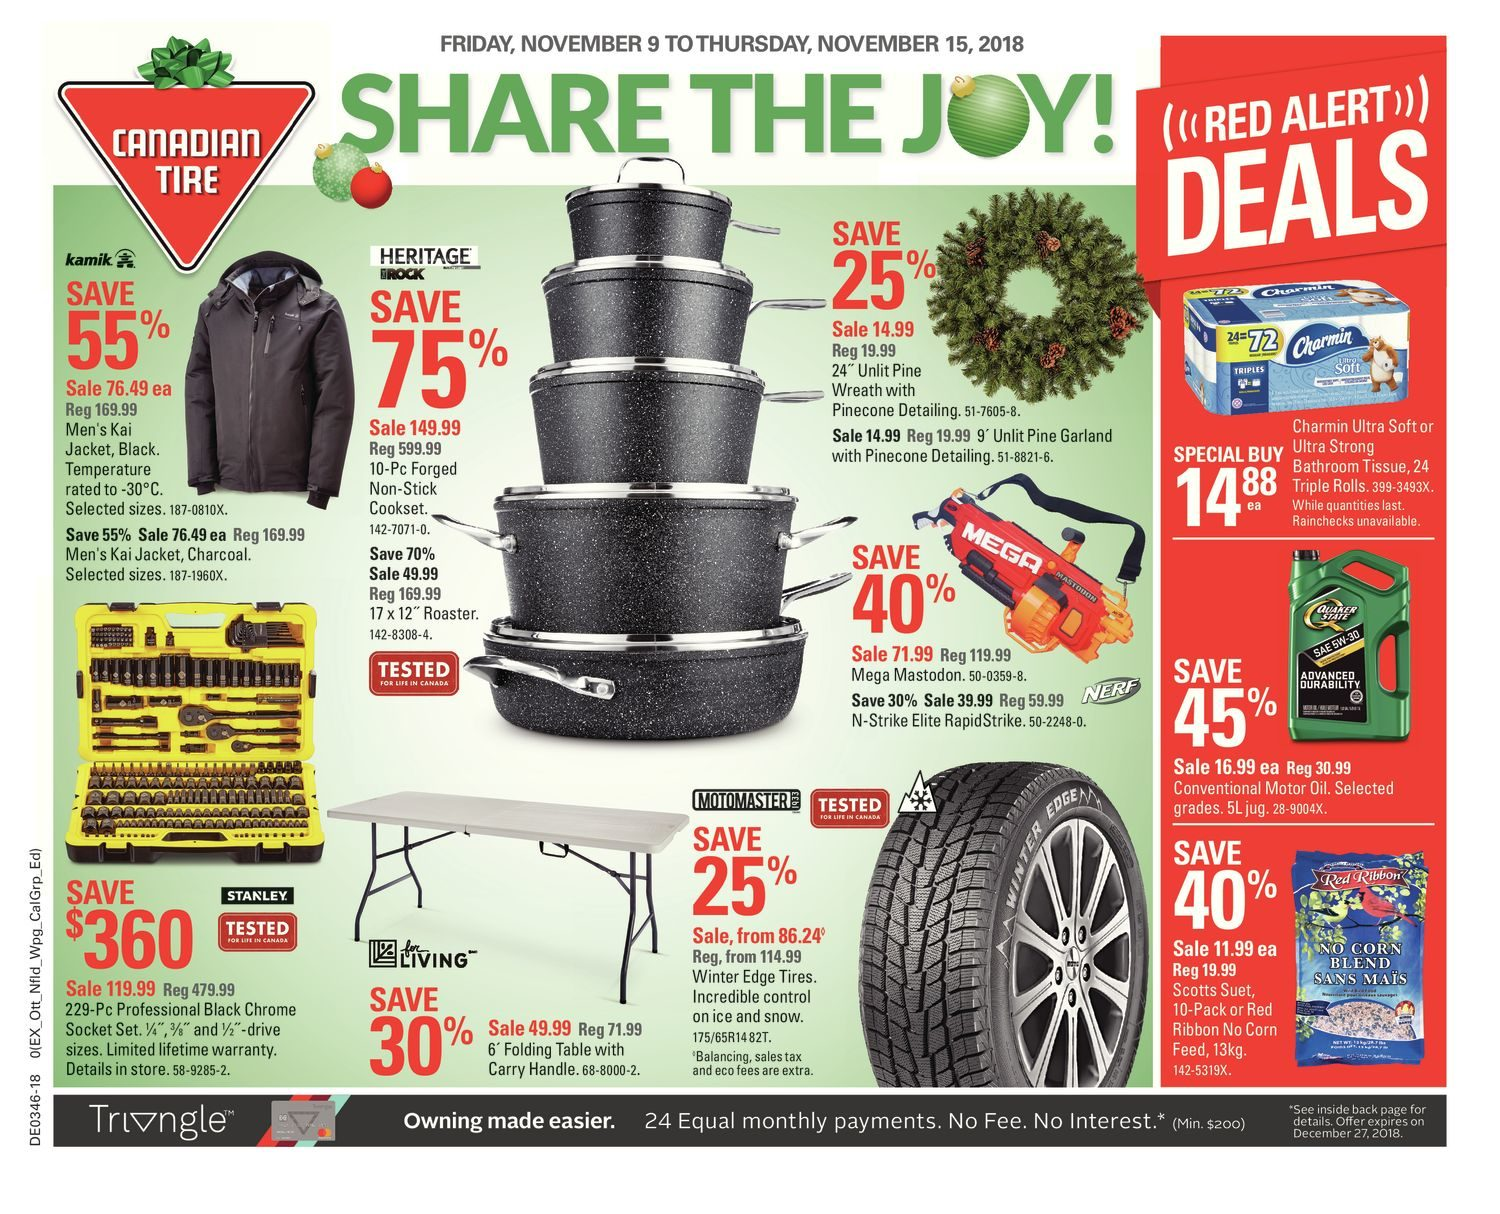 - Canadian Tire Weekly Flyer - Weekly - Share The Joy! - Nov 9 – 15